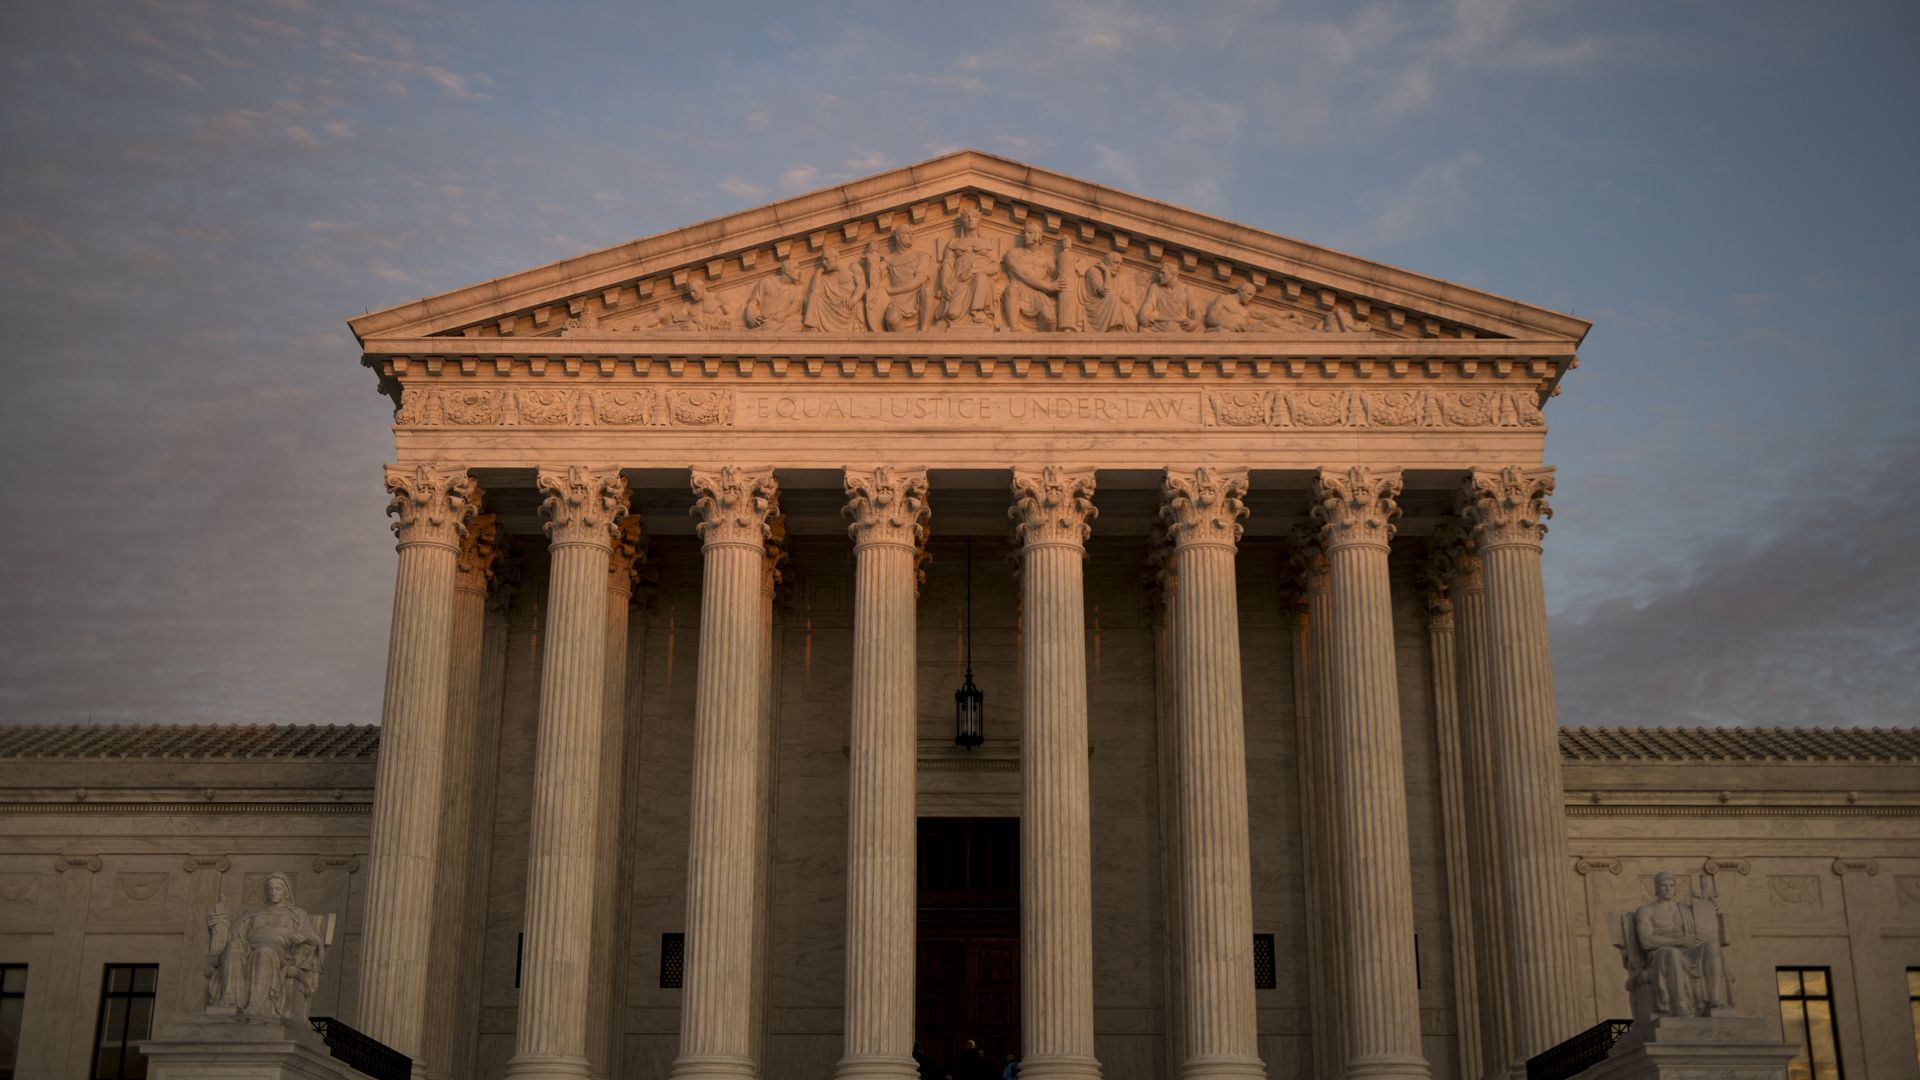 The Supreme Court building from a low angle.